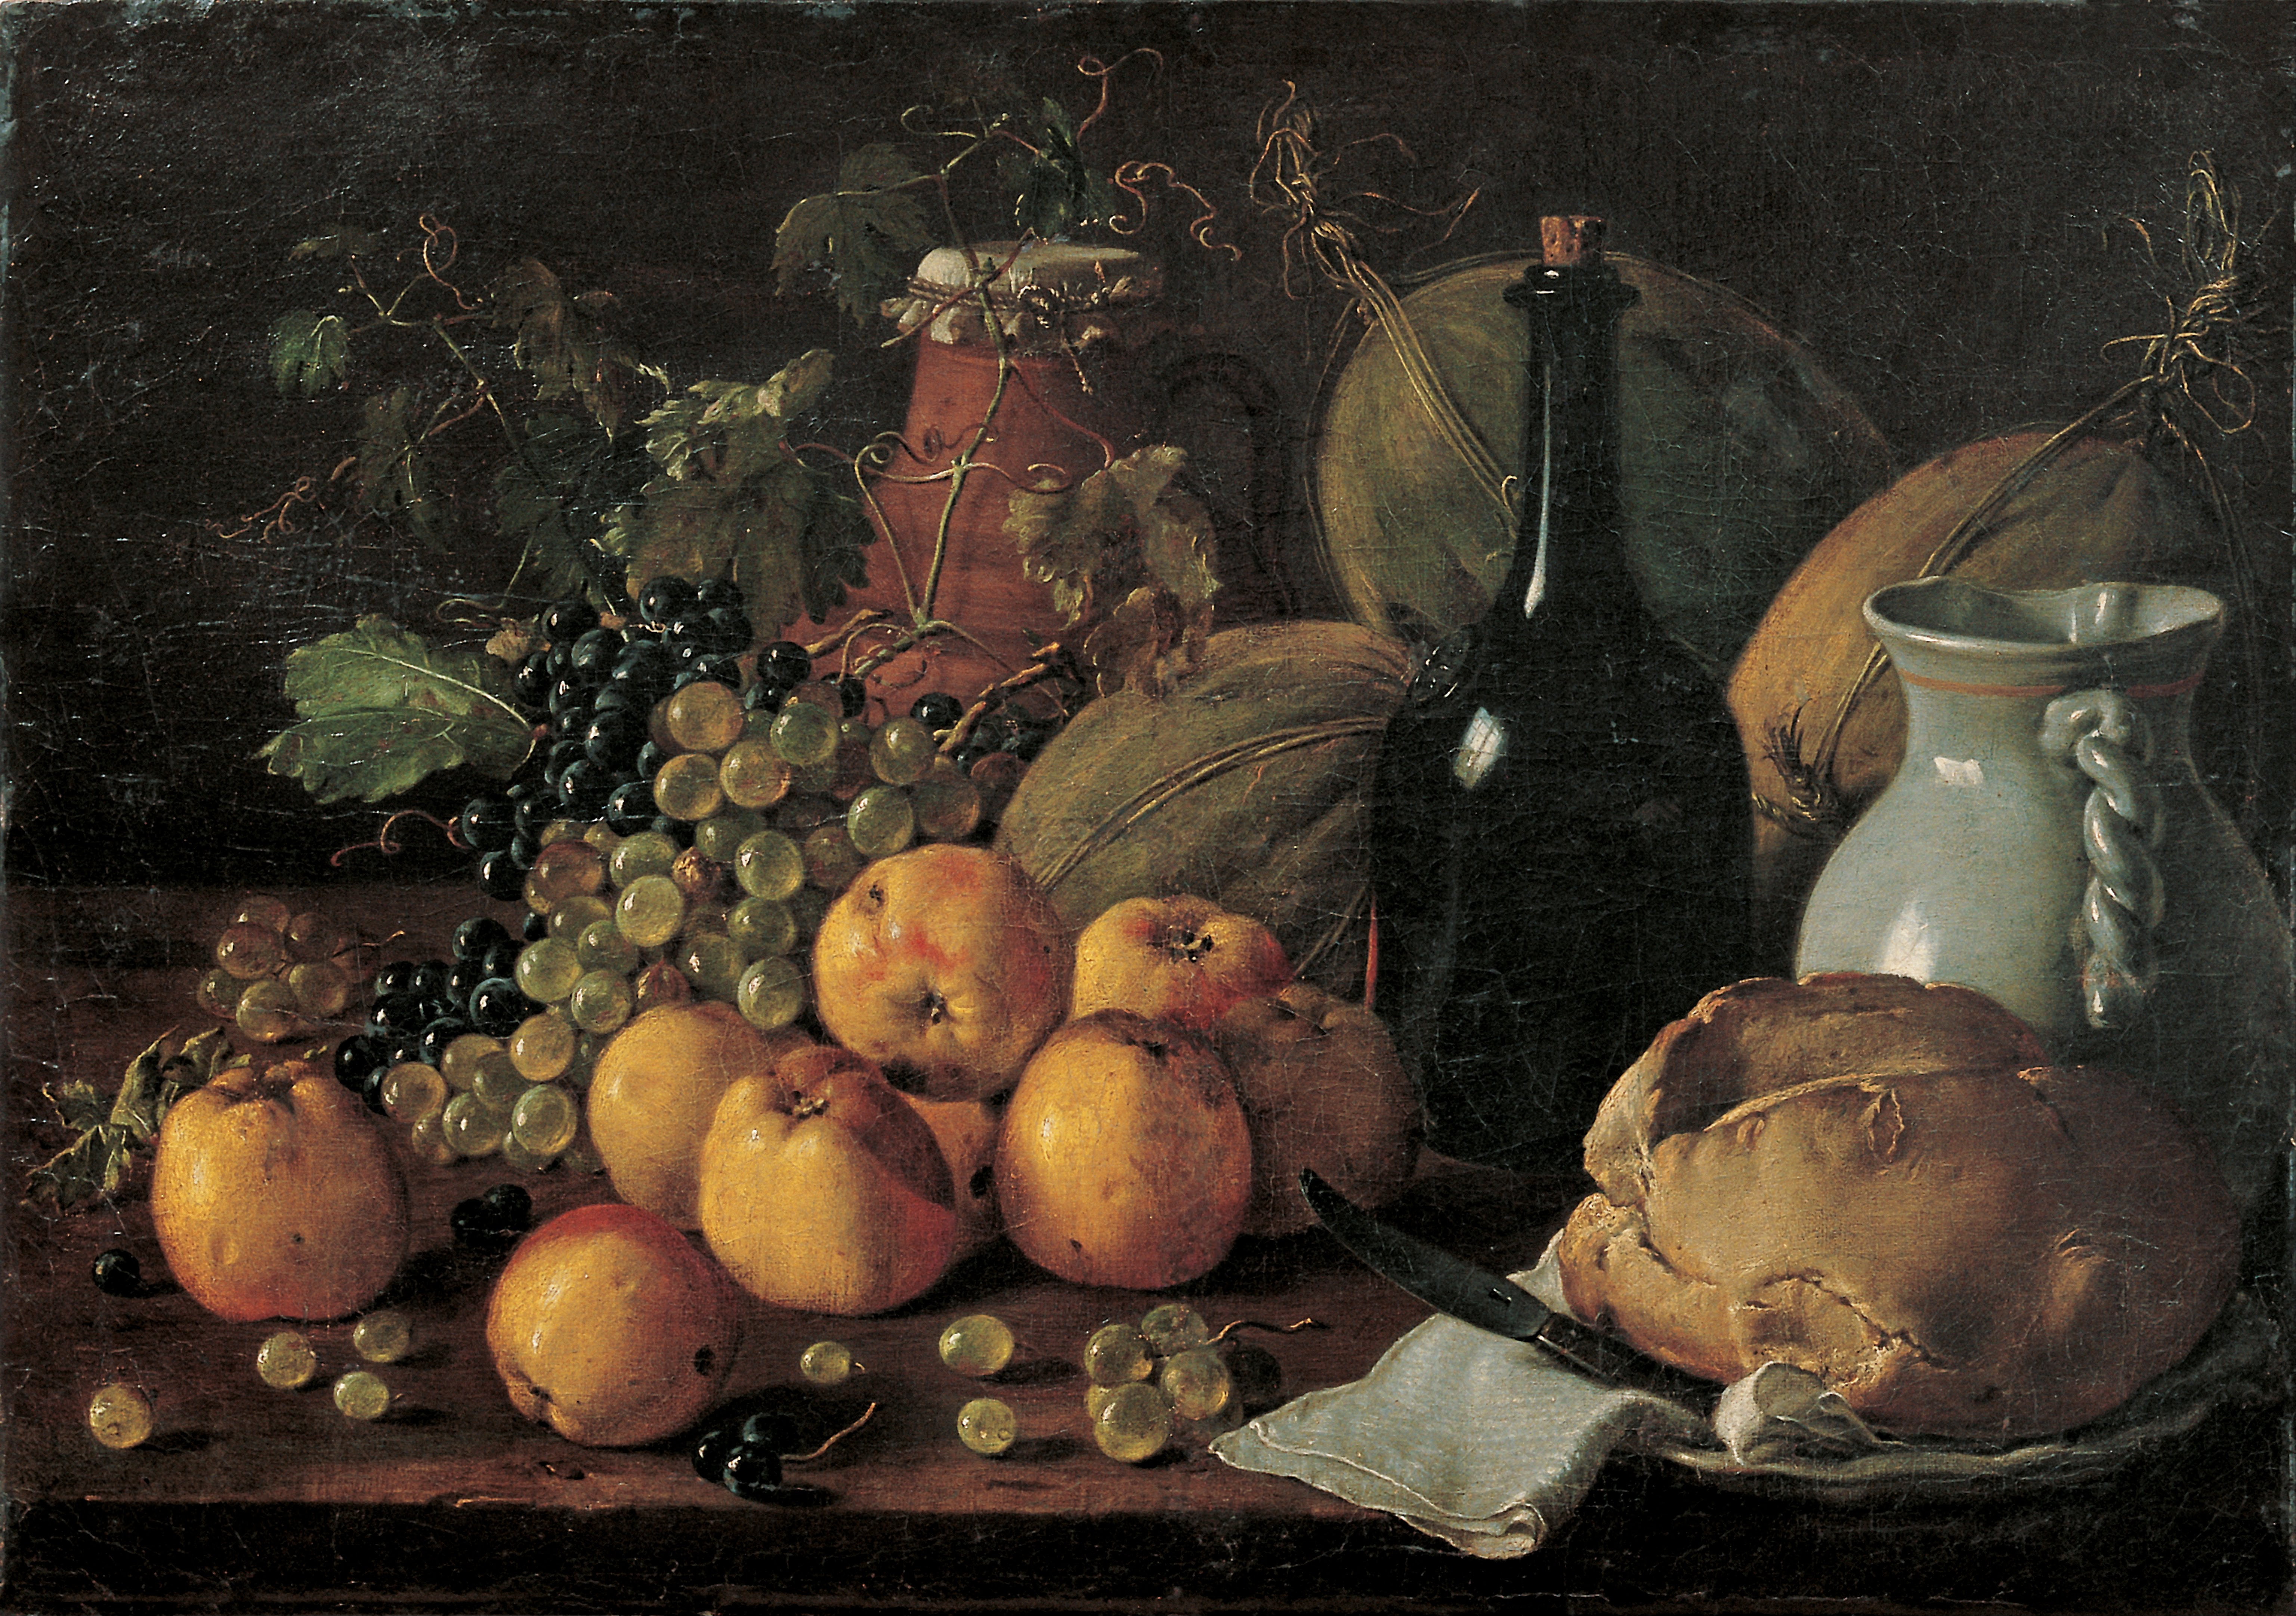 Cuadros Flamencos File:luis Meléndez - Still Life With Apples, Grapes